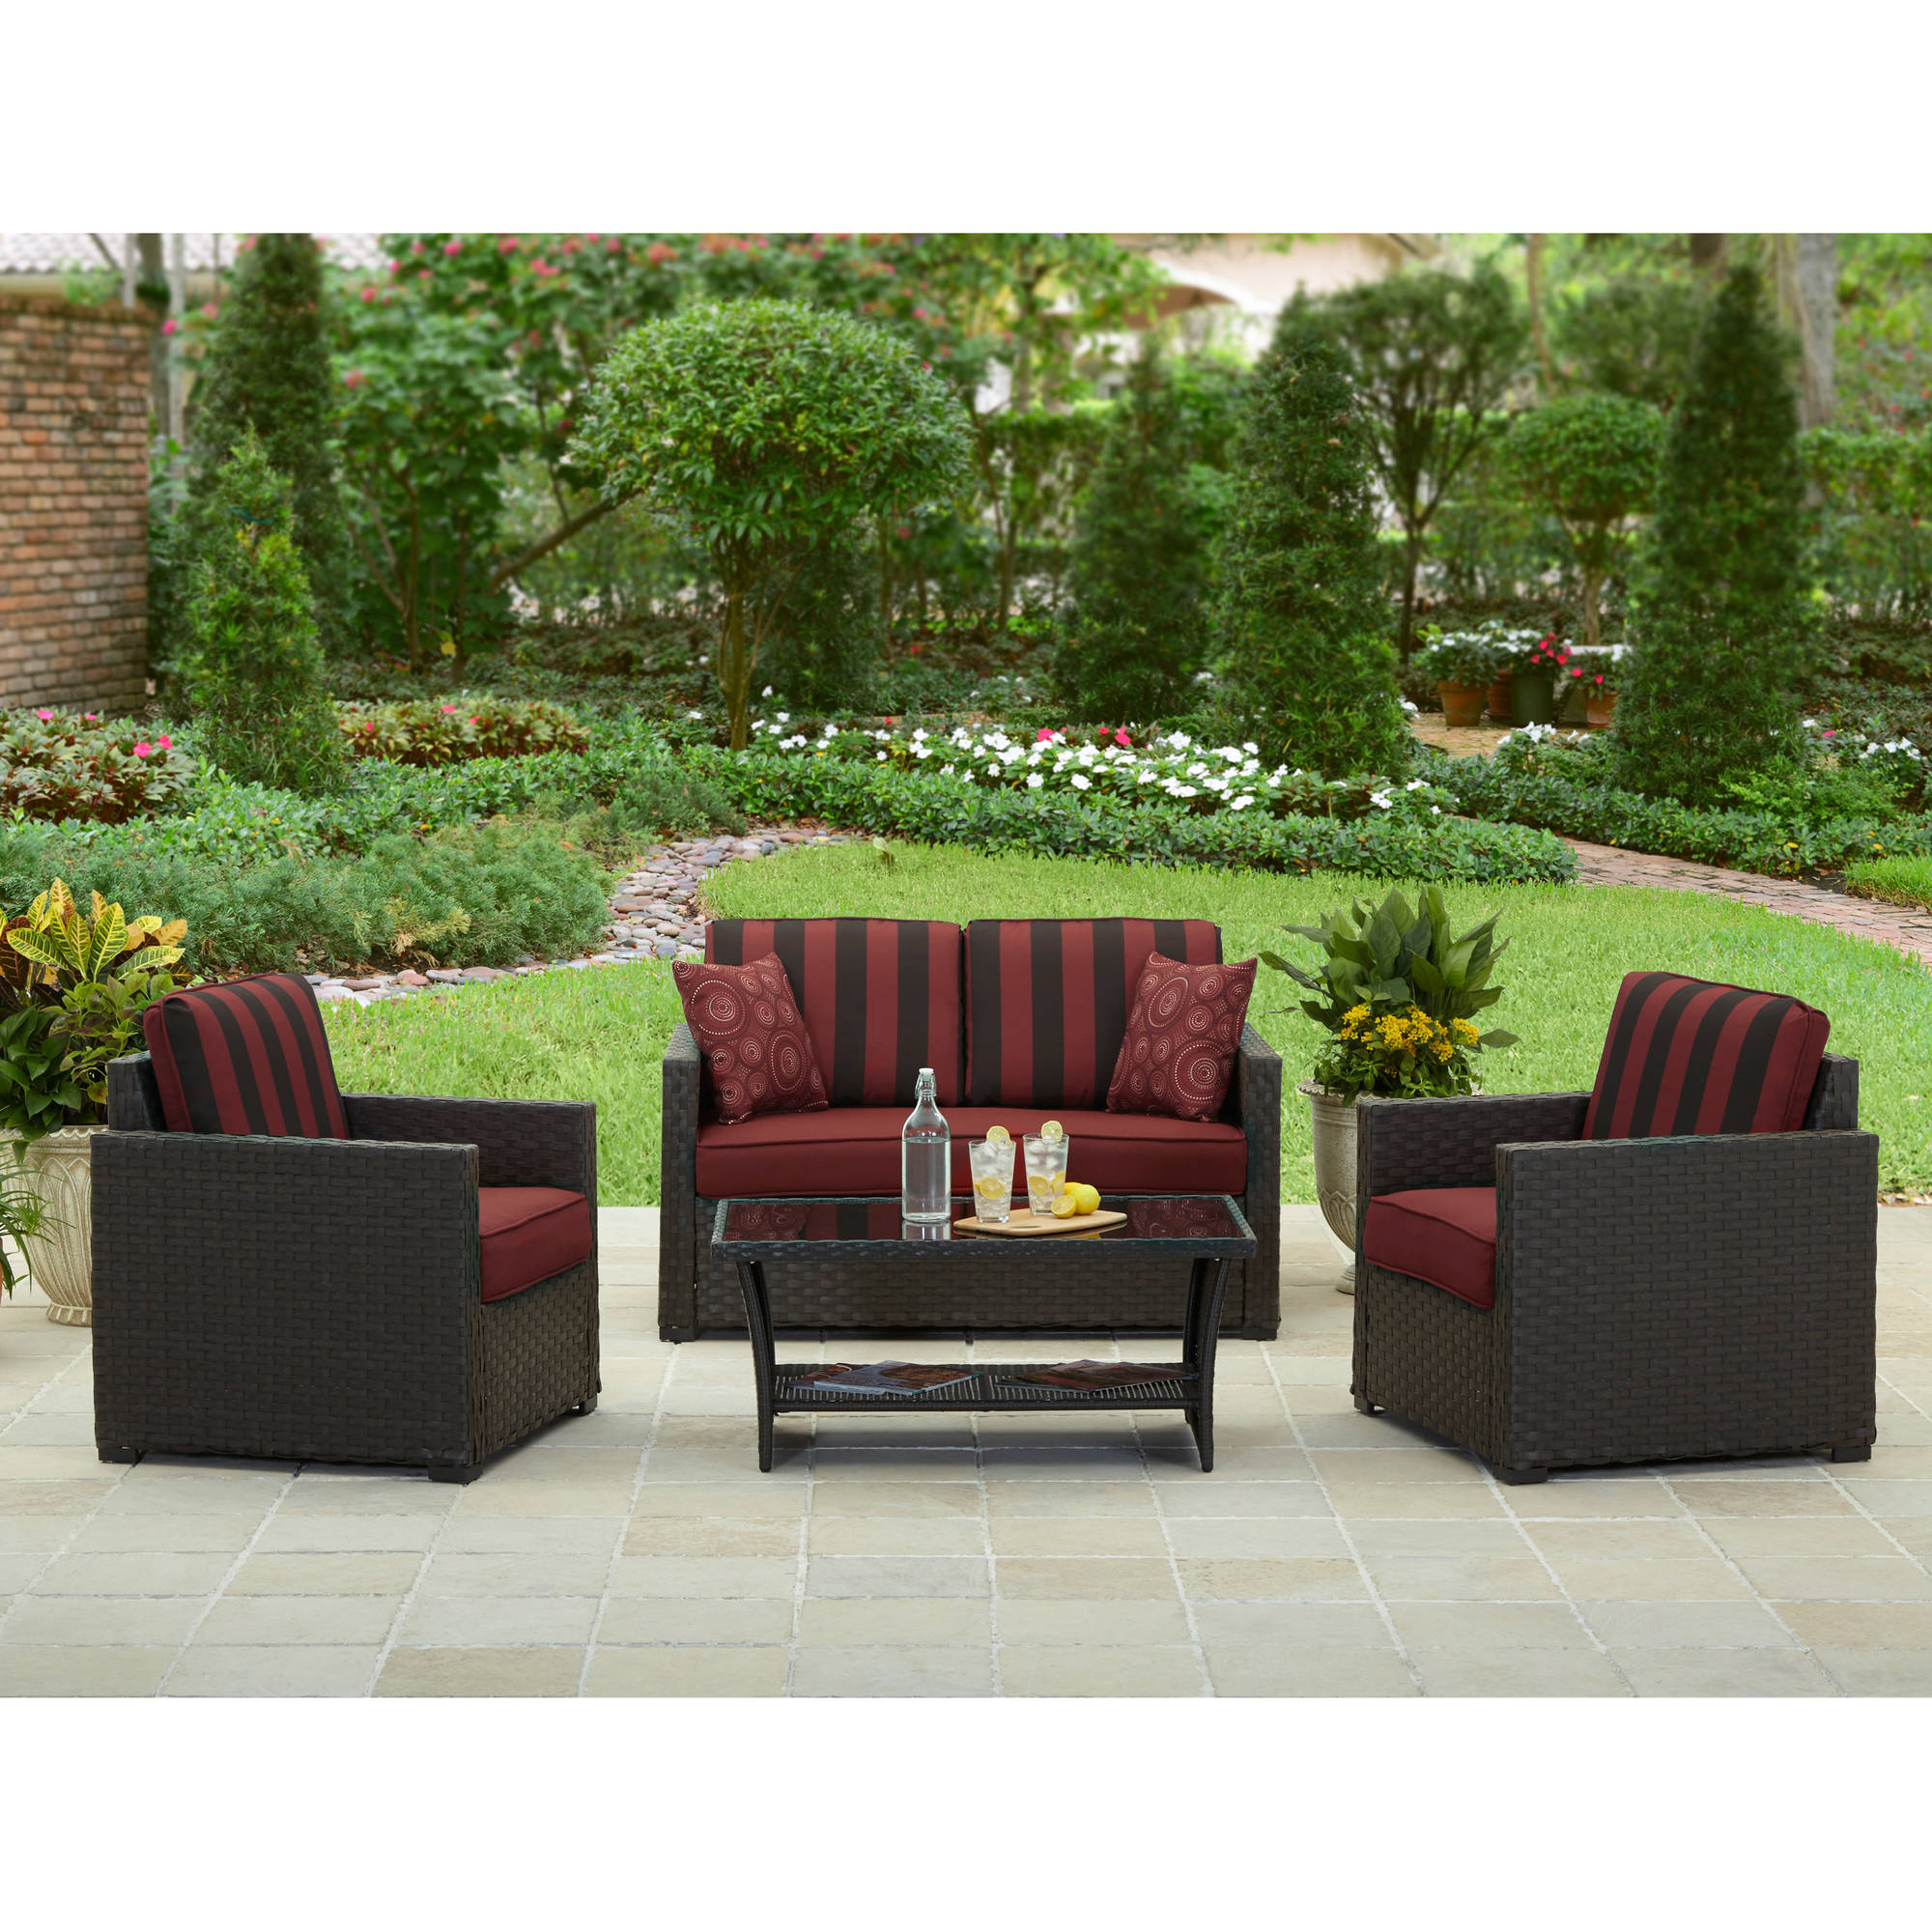 Patio furniture at furniture complete Better homes and gardens patio furniture